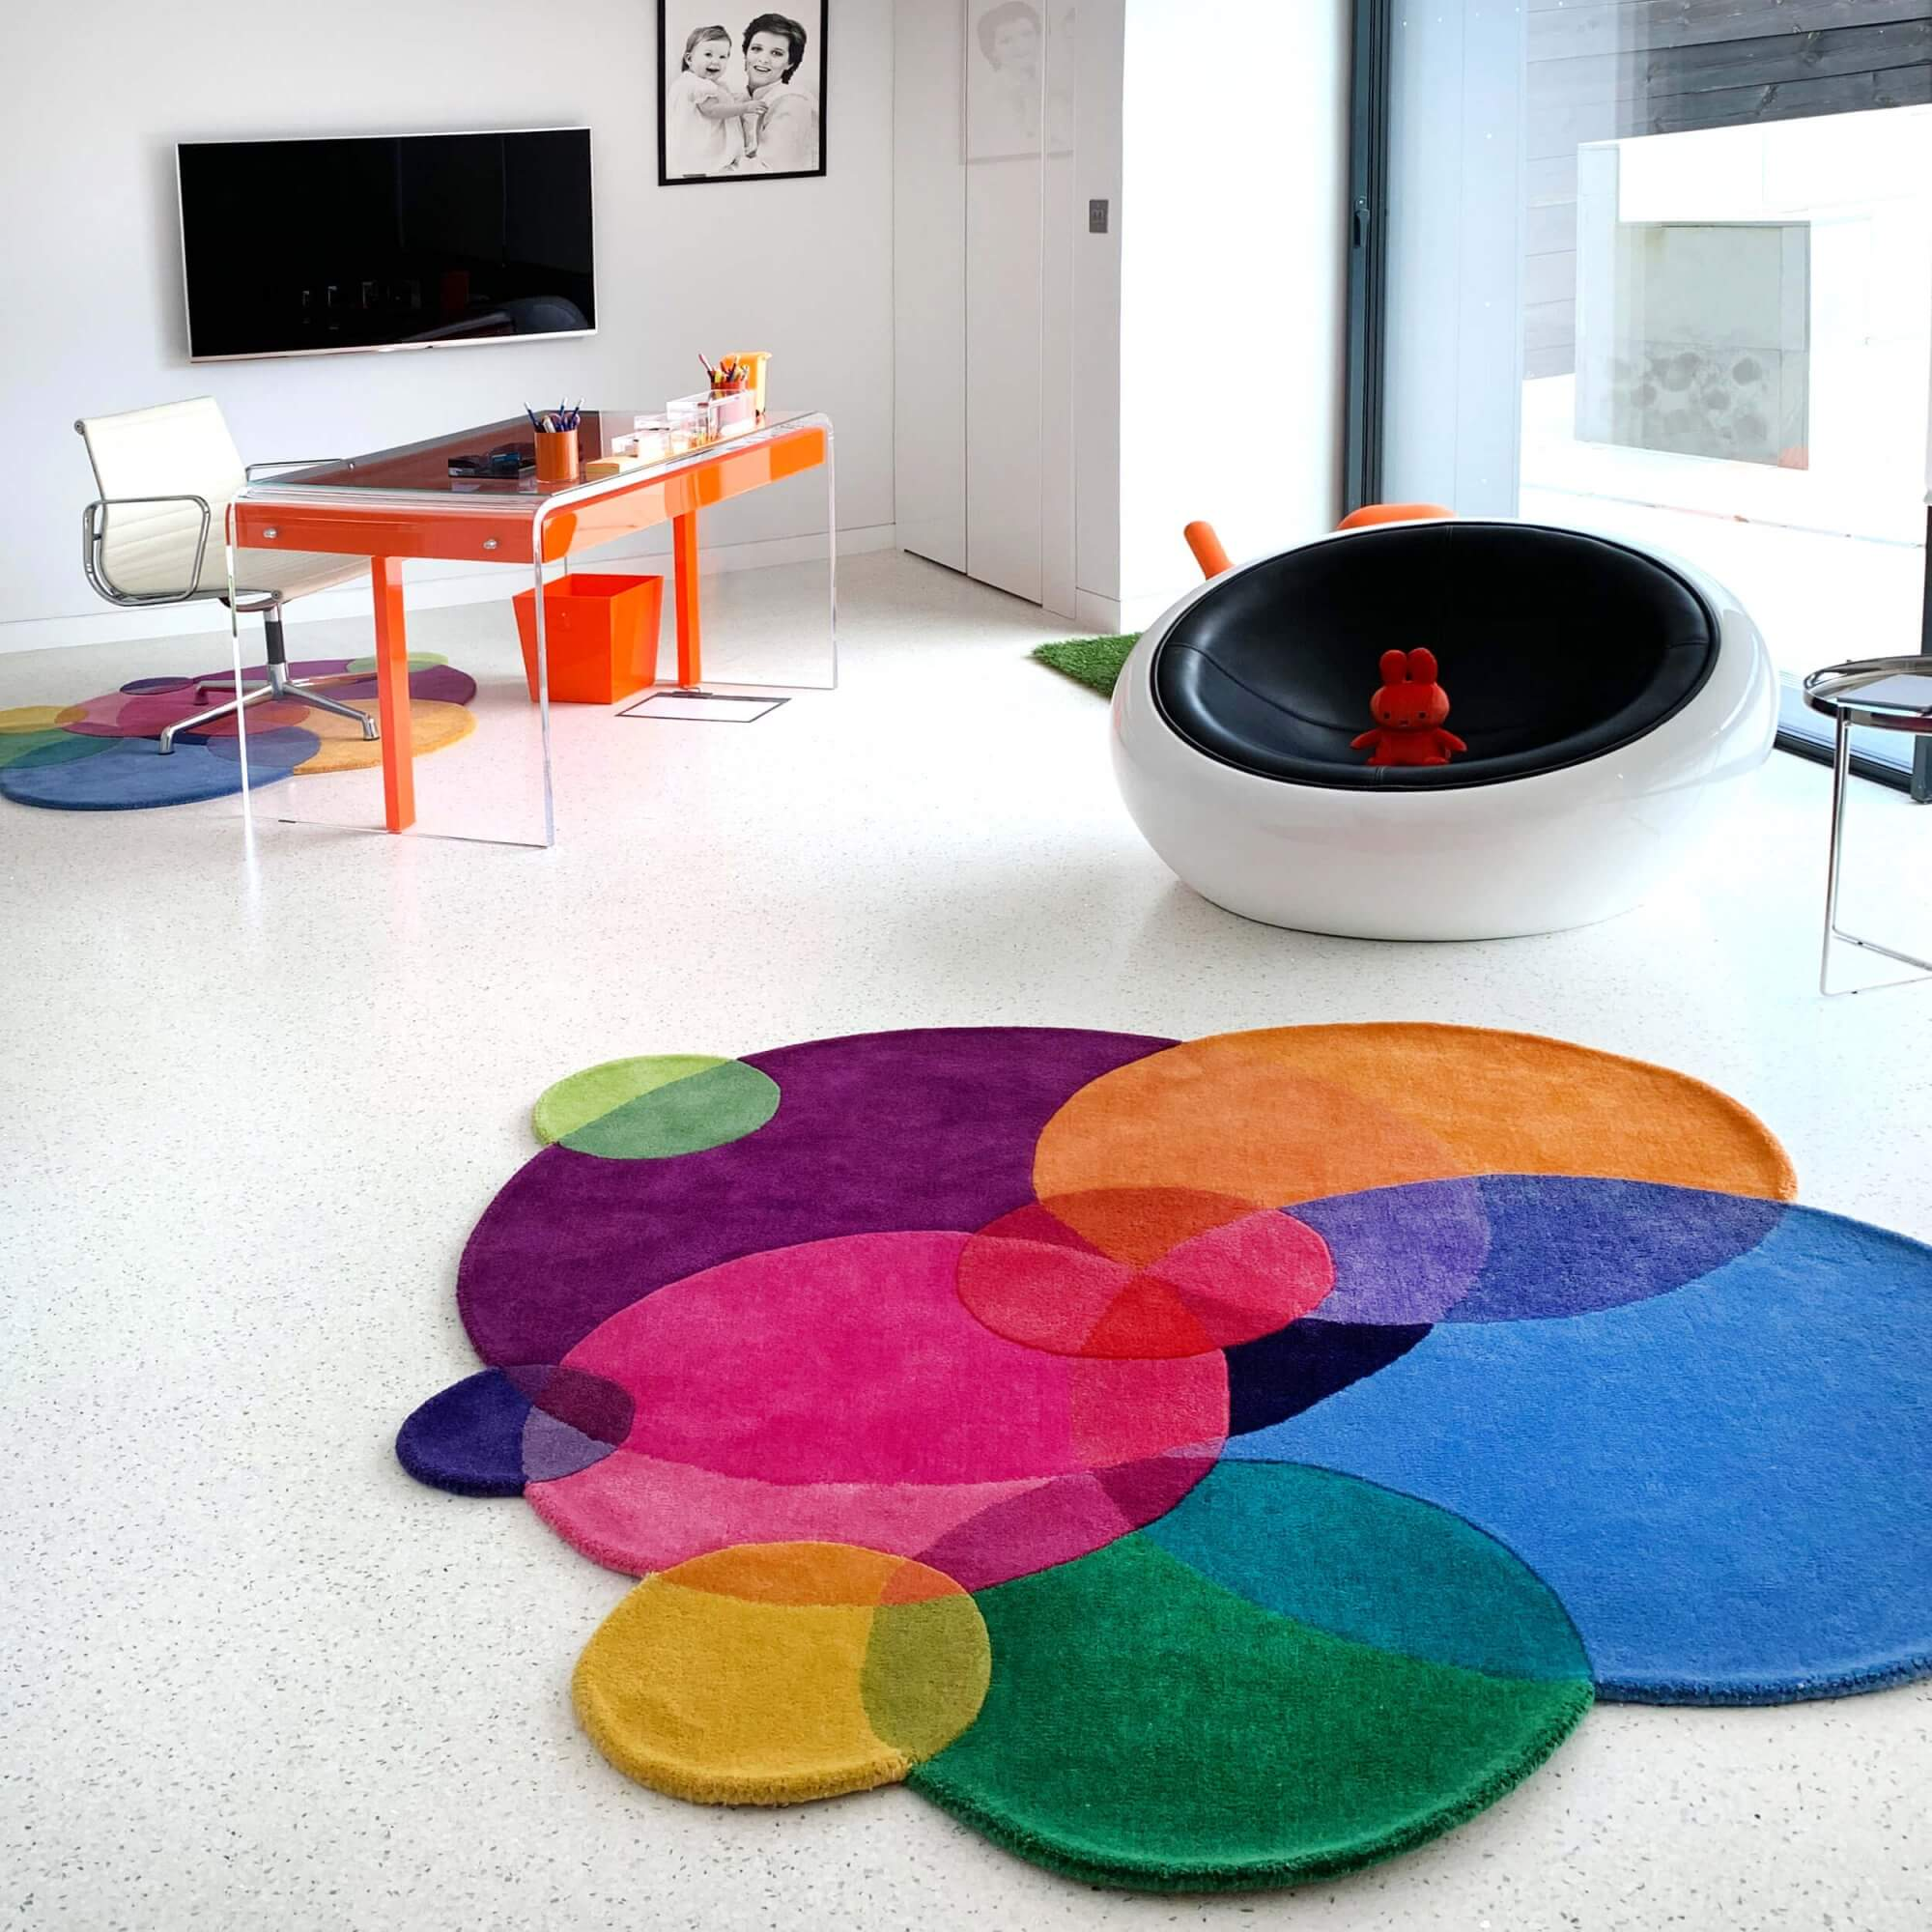 Contemporary Rug for Home Office LR